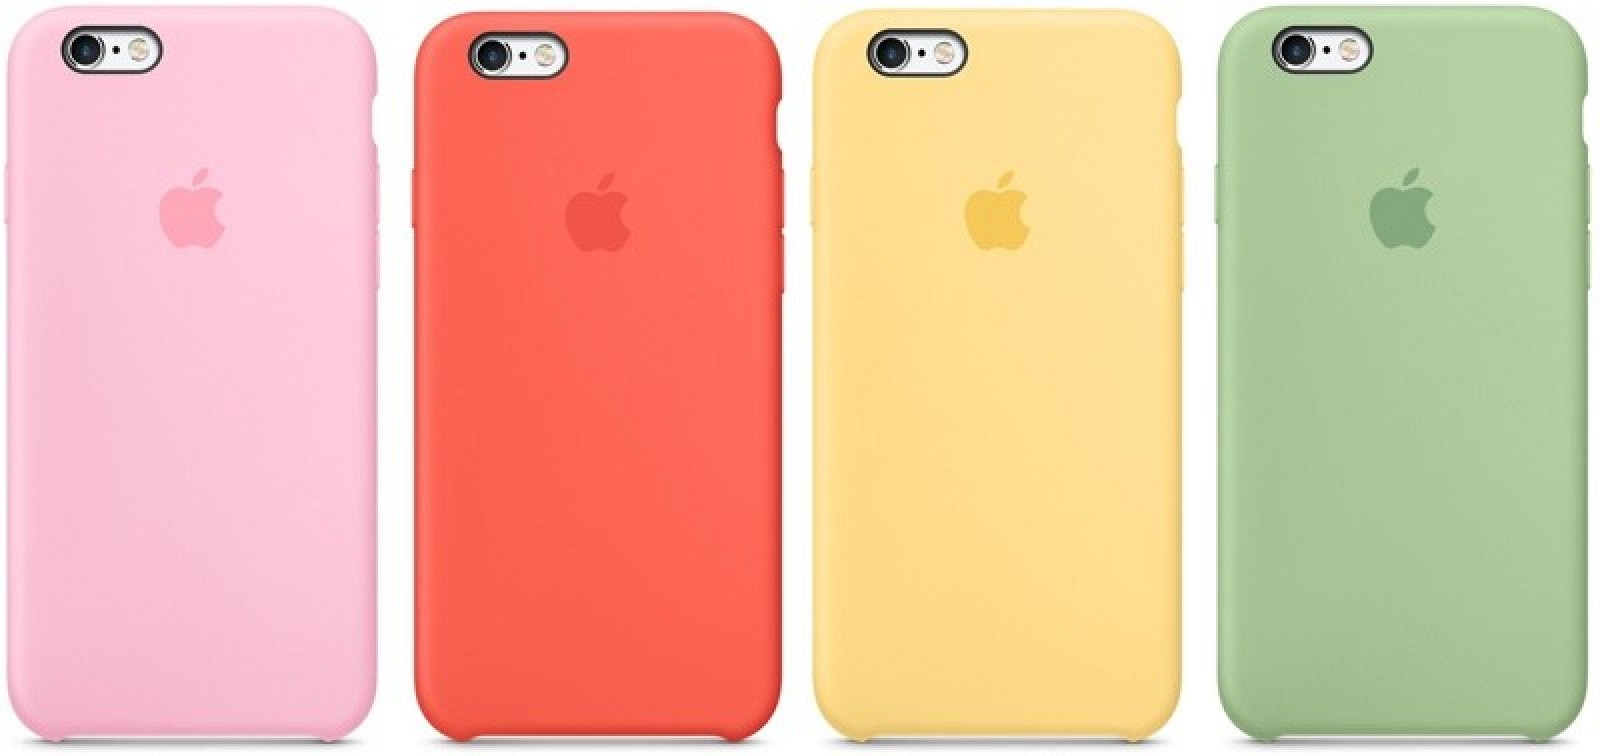 iphonecasespringcolors-800x378.jpg